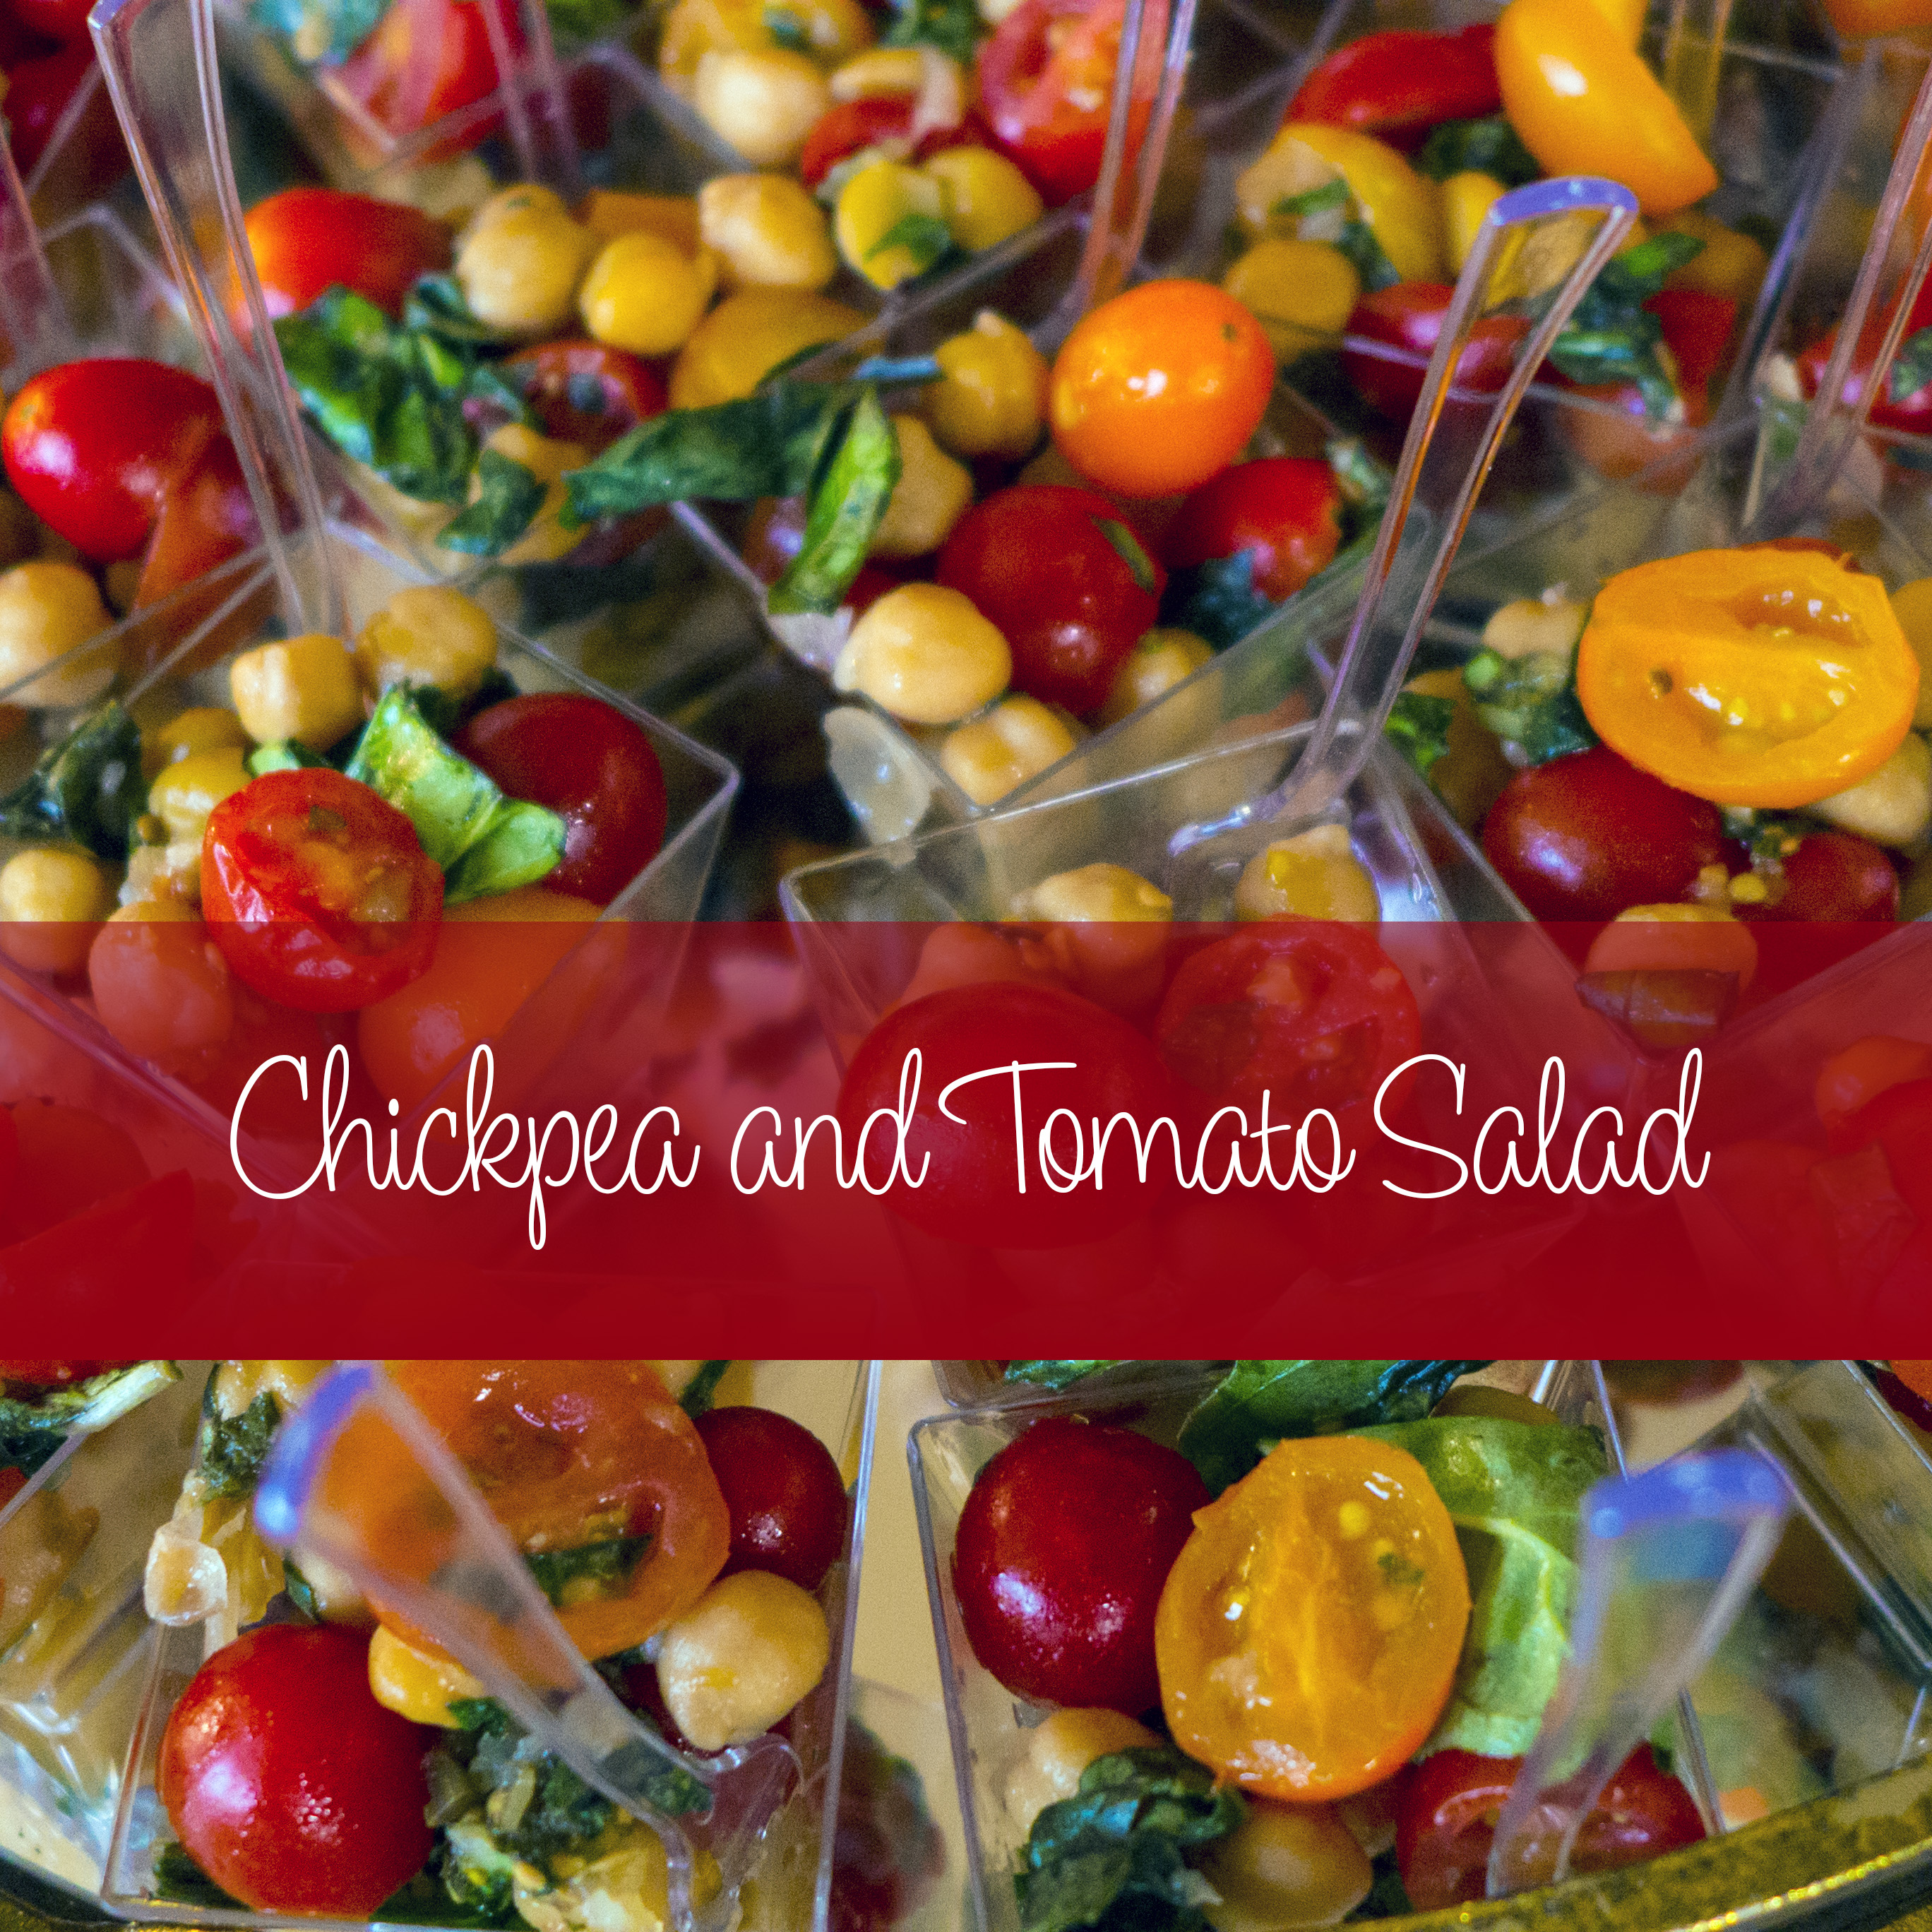 Chickpea and Tomato Salad